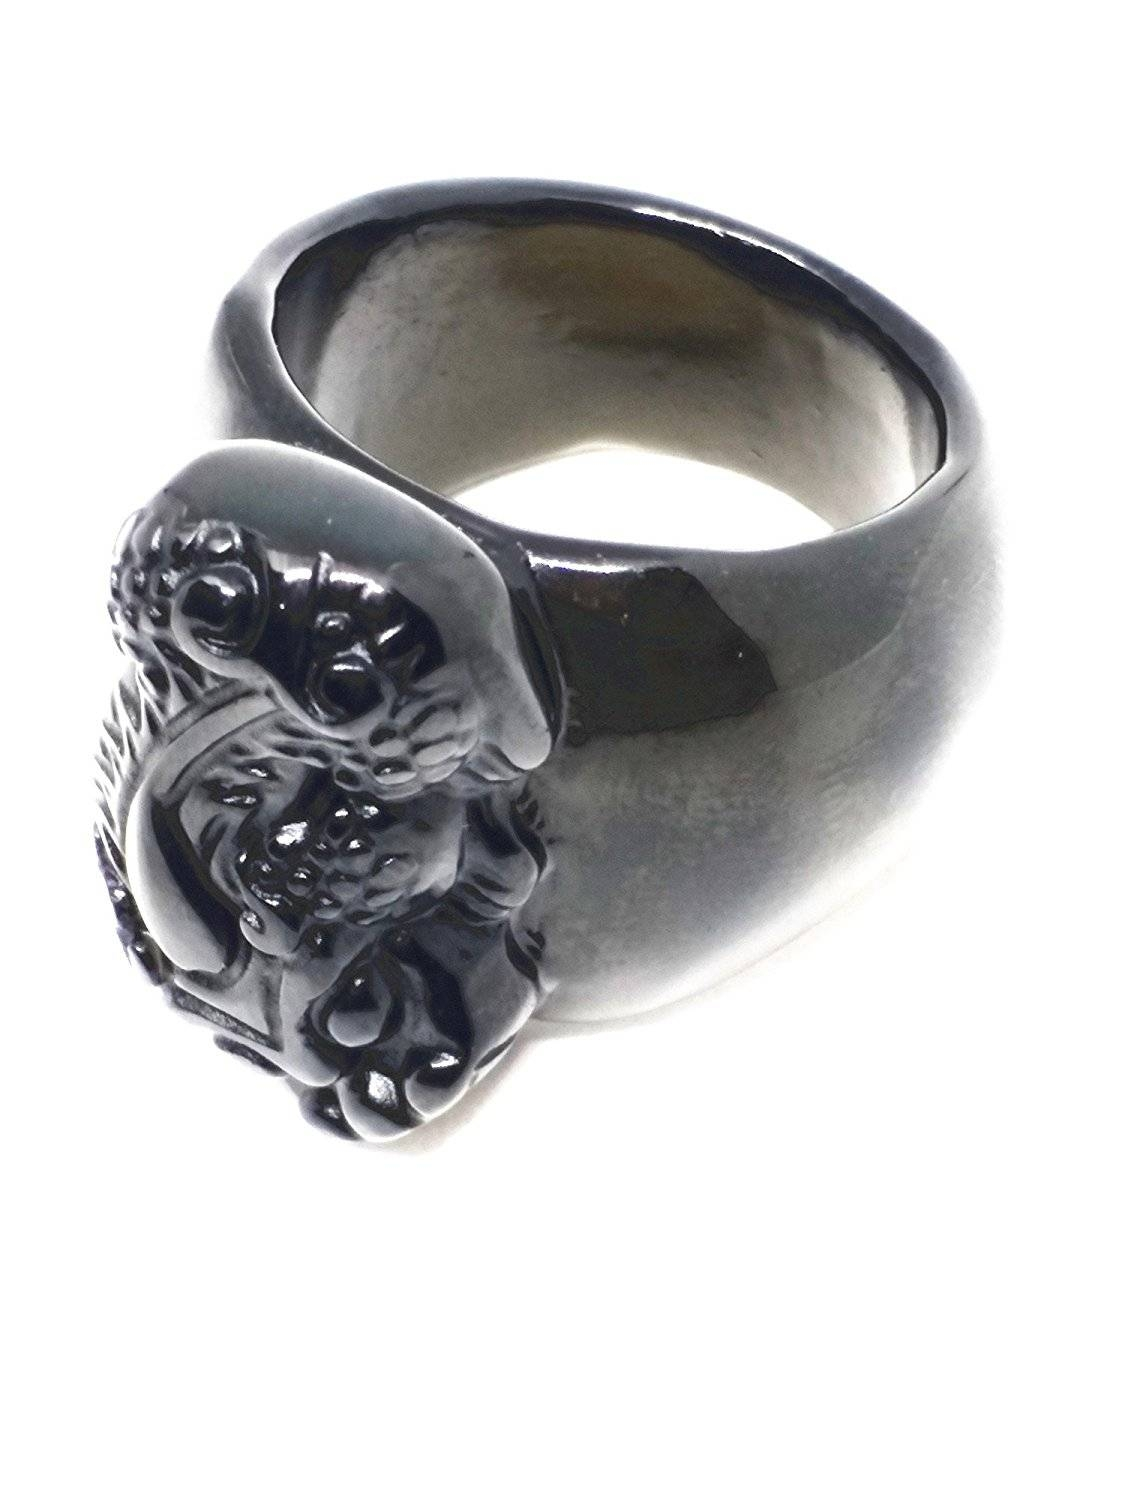 15 Best Of Obsidian Wedding Bands